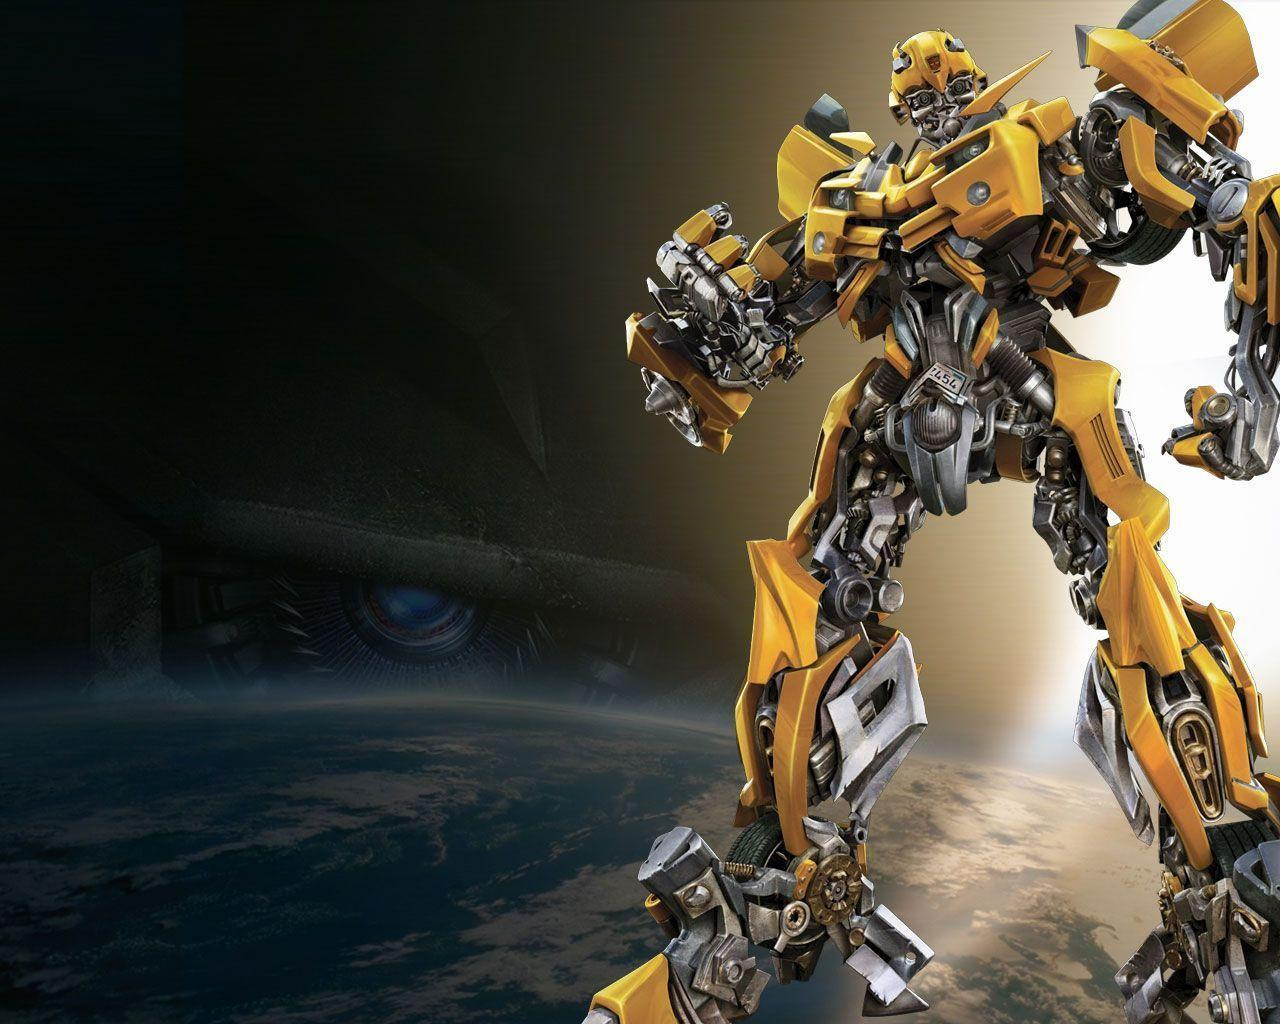 Transformers 2 Bumblebee Wallpapers - Wallpaper Cave